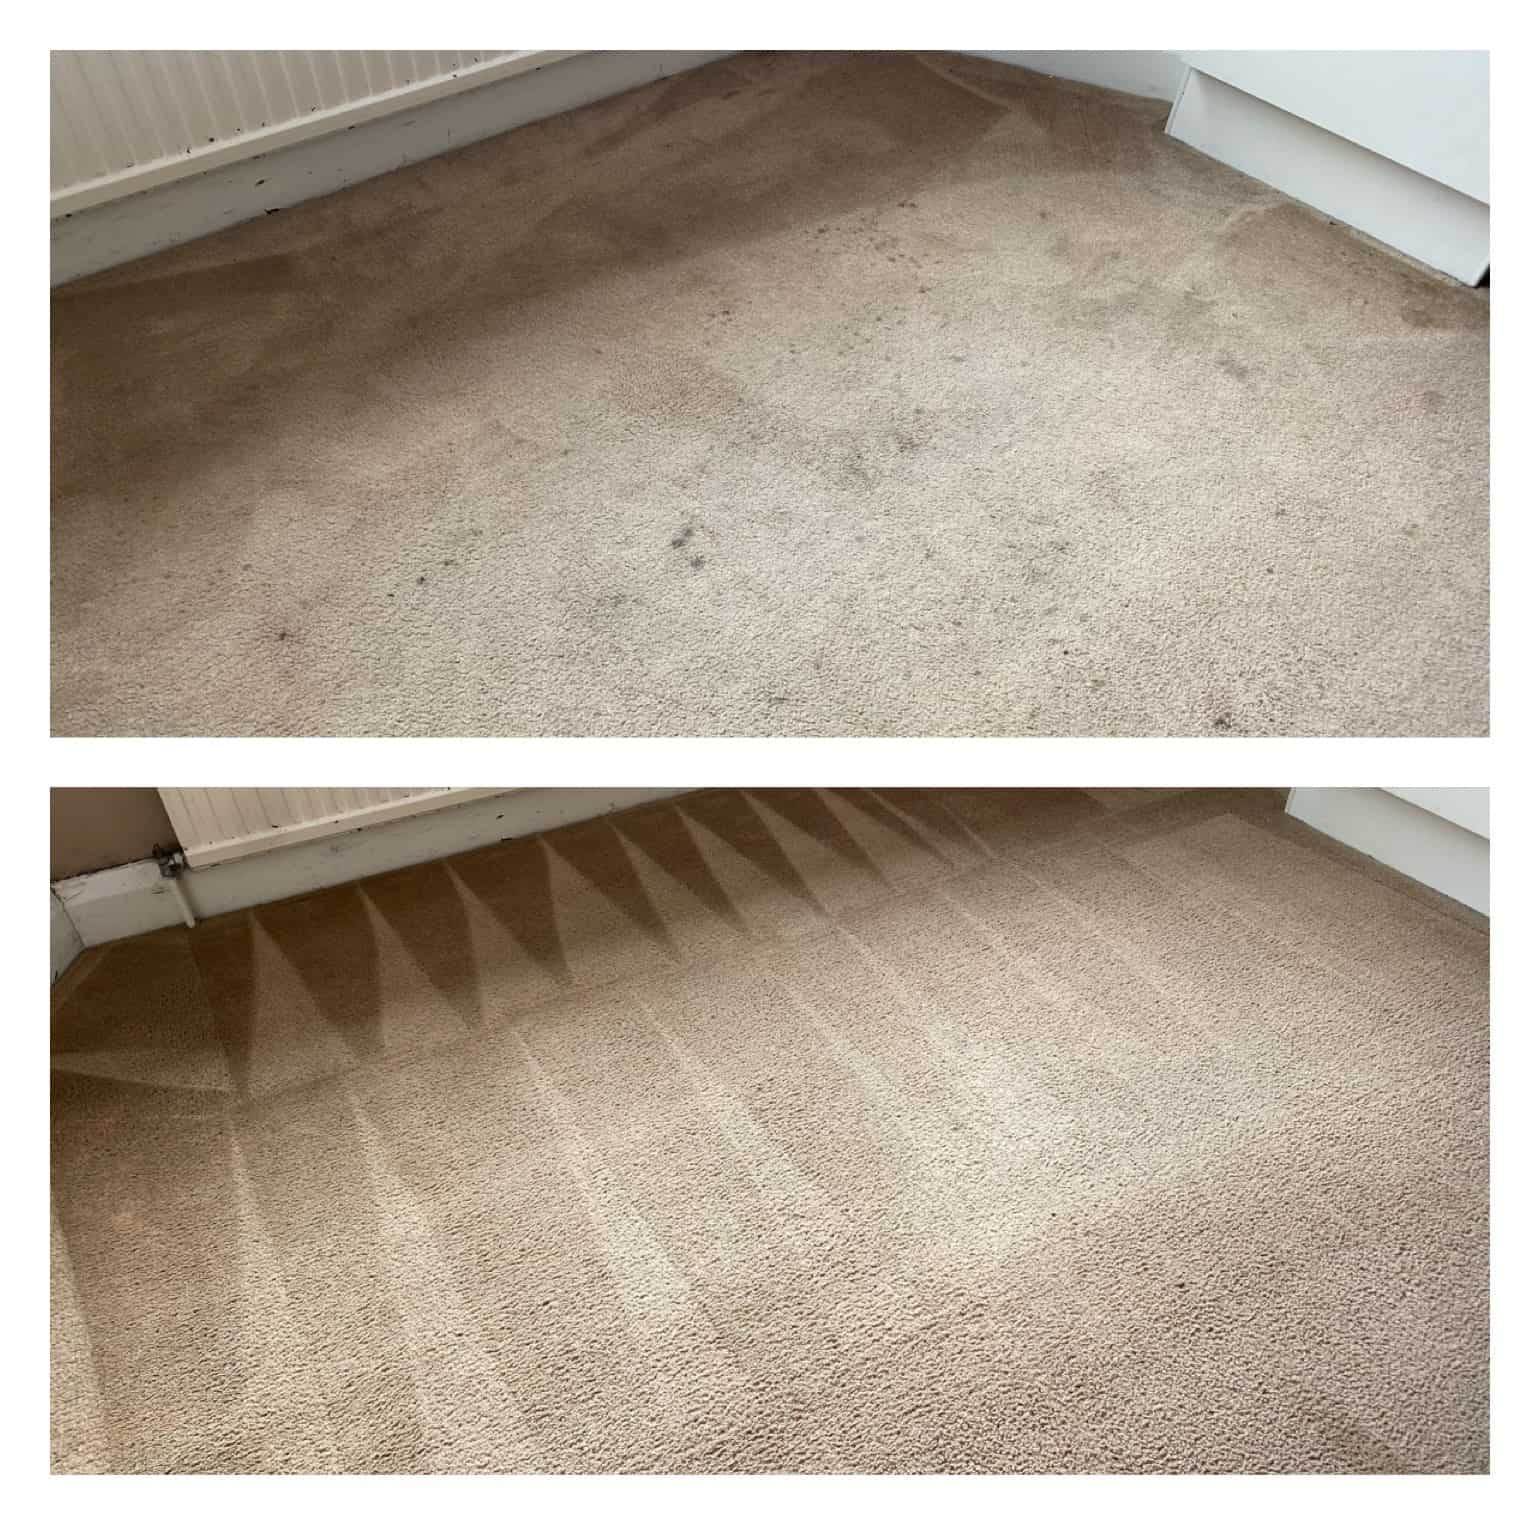 Before and after of carpet cleaning job